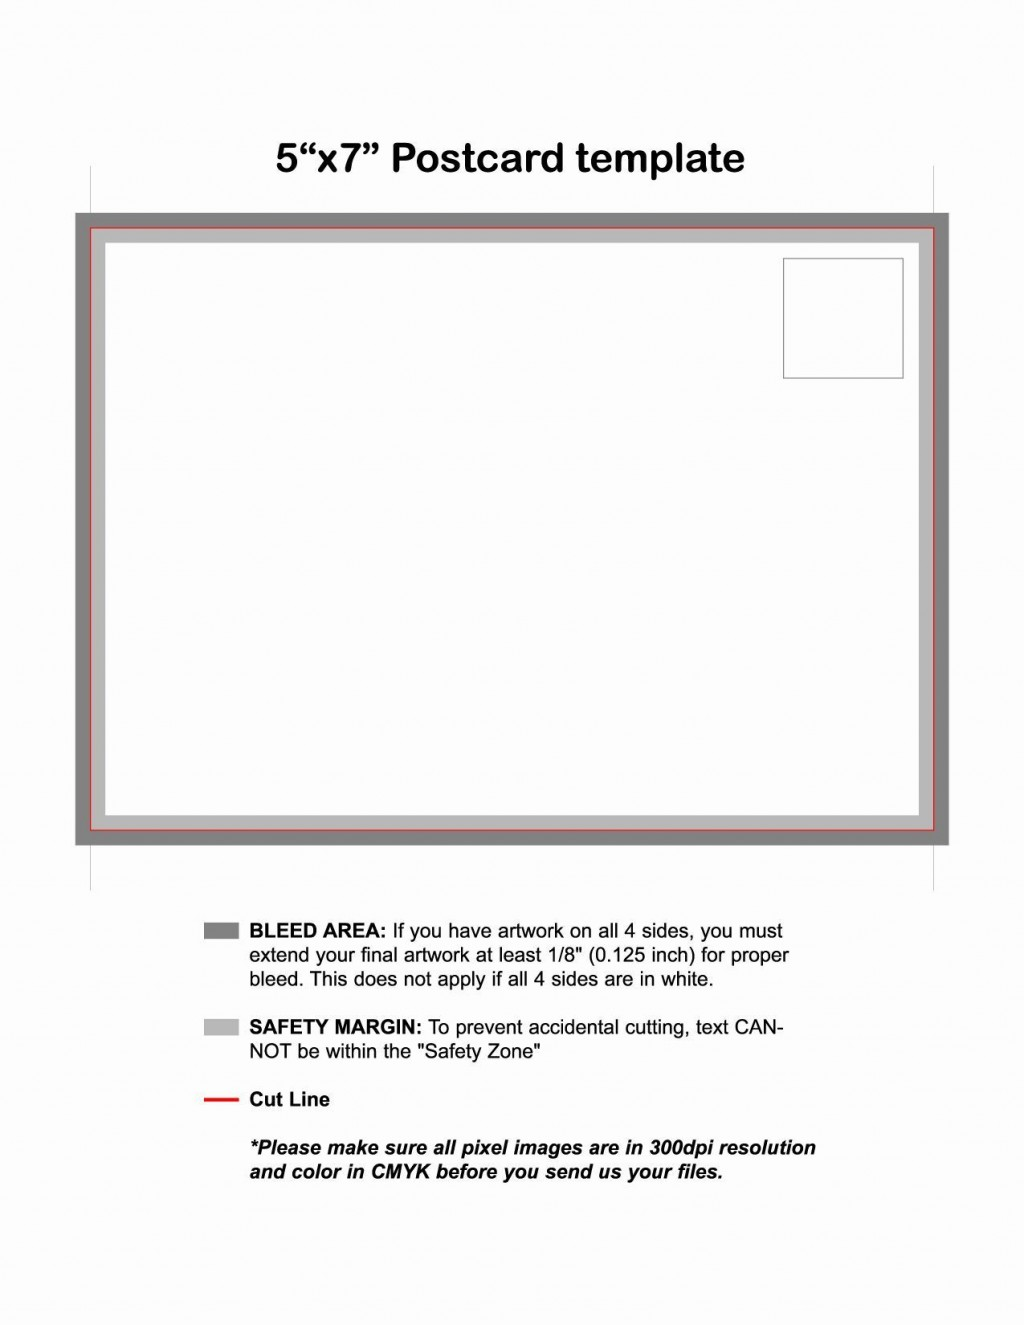 007 Unique 5 X 7 Postcard Template Microsoft Word High Definition Large